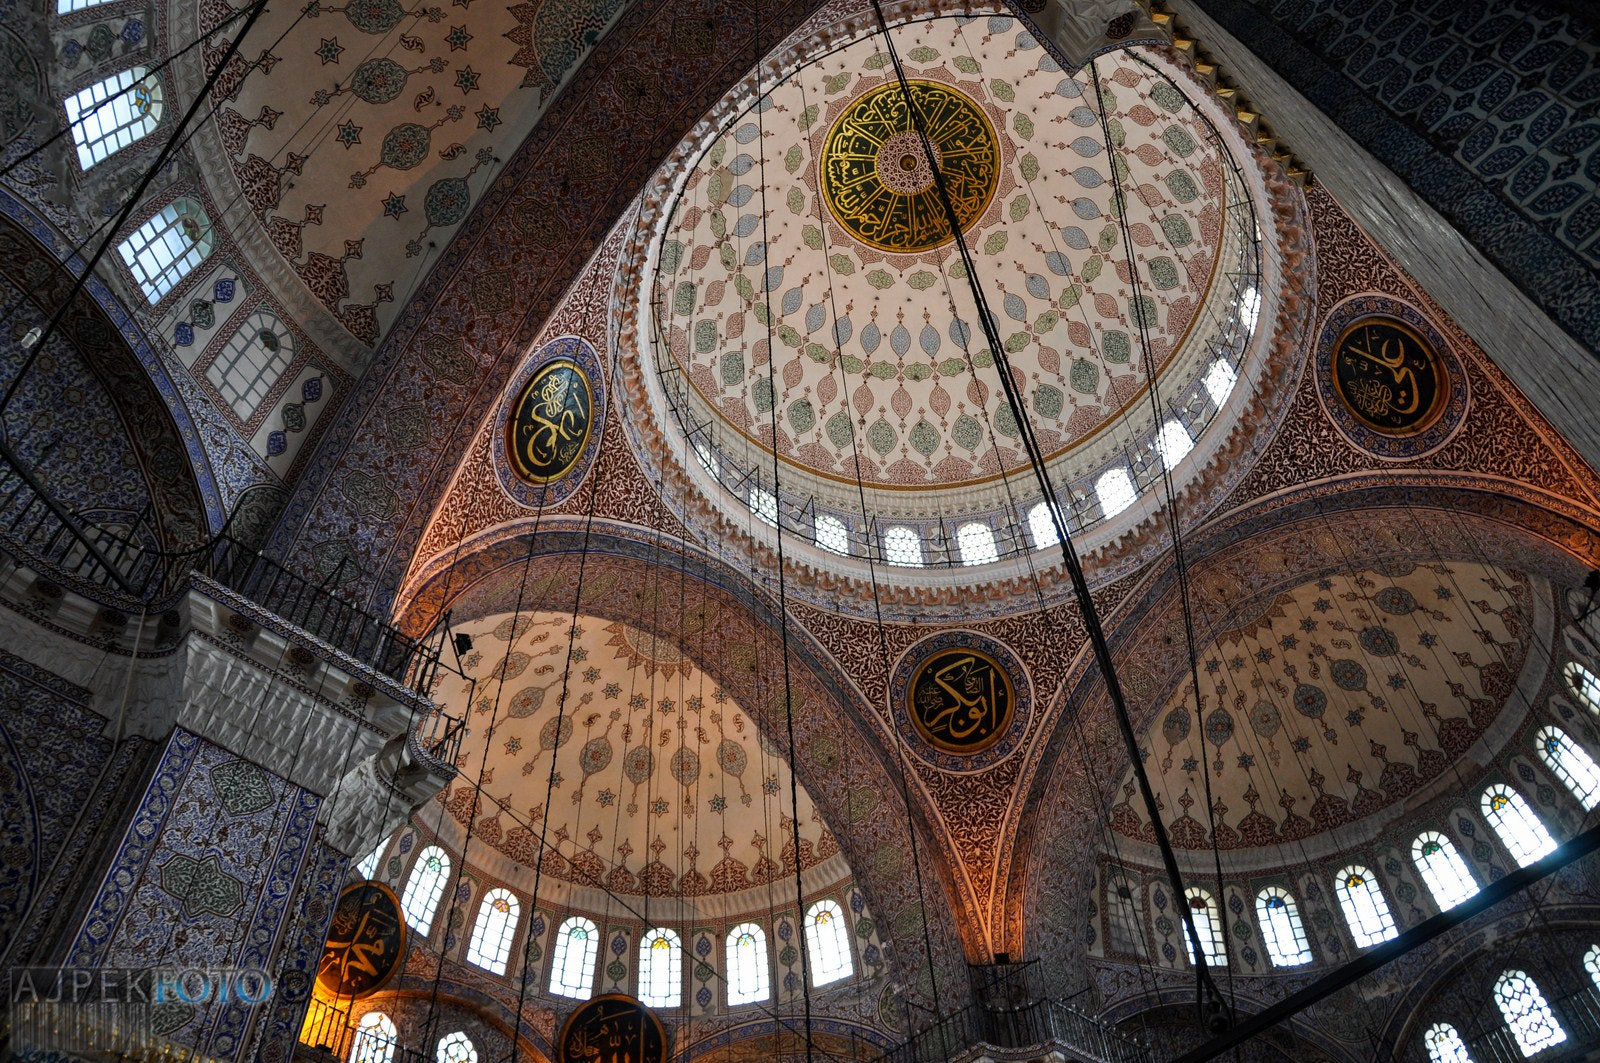 Photograph The Sultan Ahmed Mosque by Ajpekfoto  on 500px